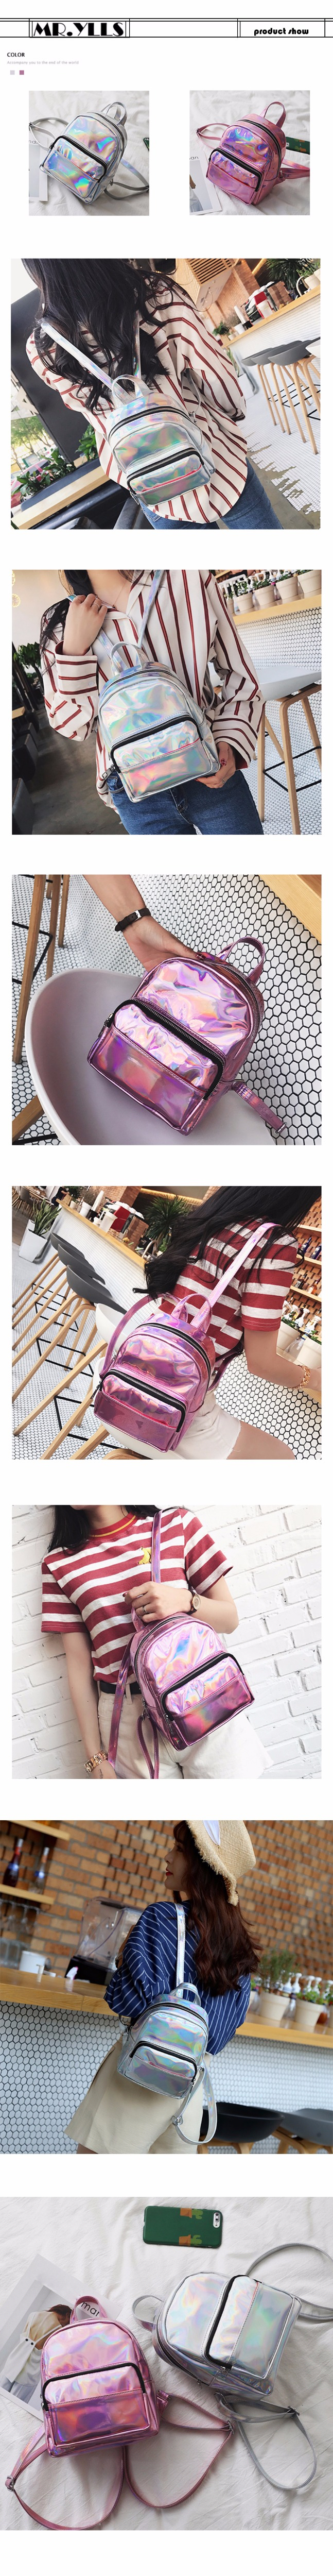 82bde29fbfd8 Laser Dazzle Colorful Women Backpacks Gradient Color Jelly Backpack ...